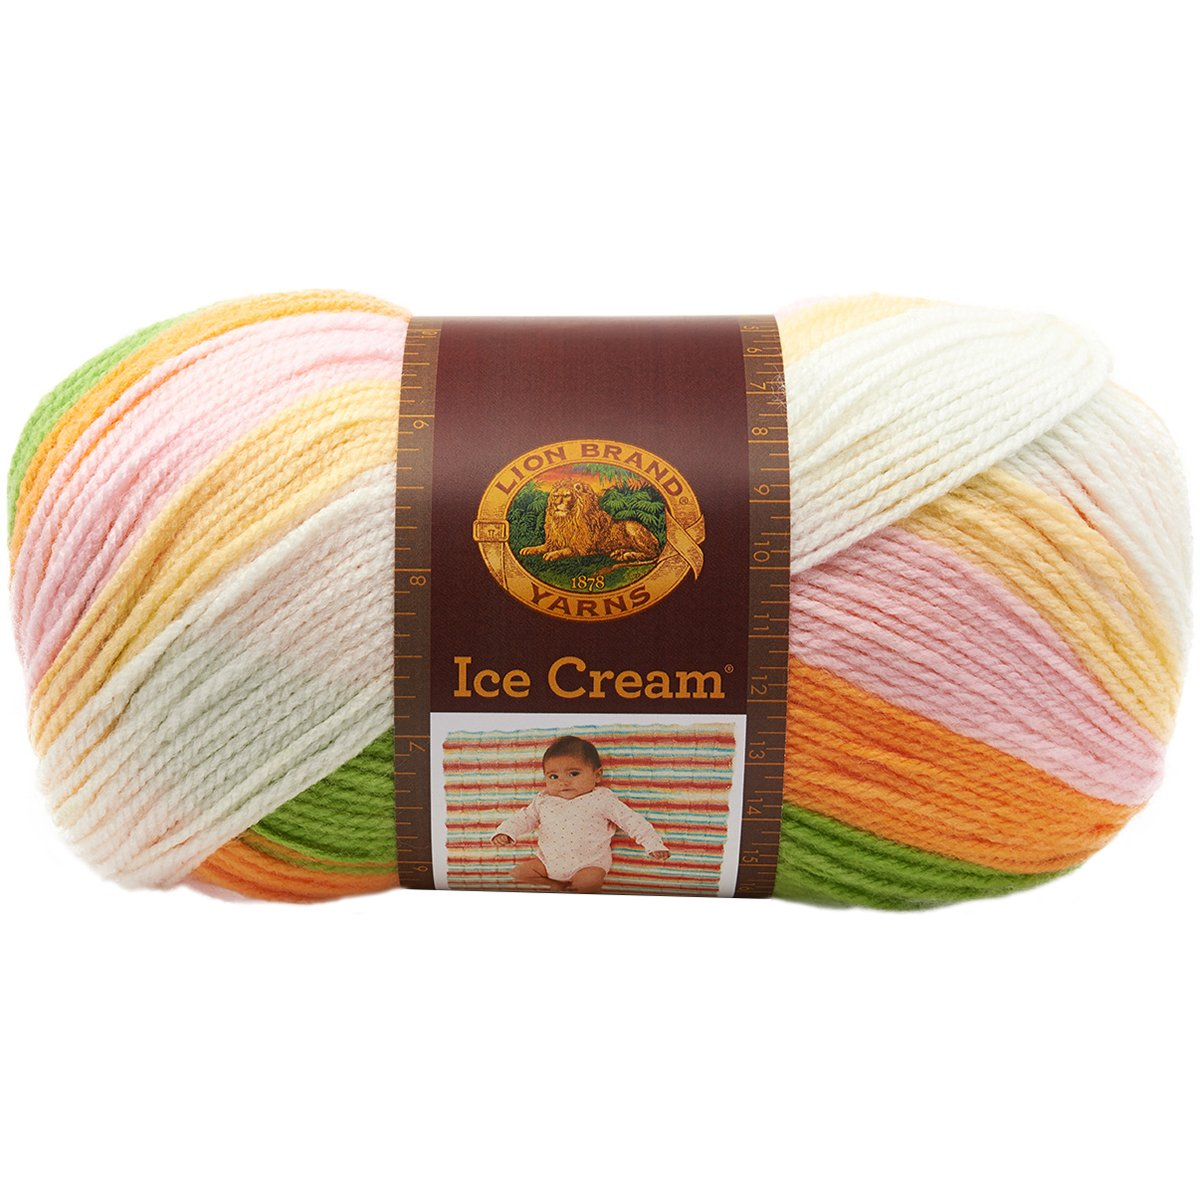 Lion Brand Yarn ICE Cream Yarn Blueberry 10.89 x 10.89 x 22.32 cm